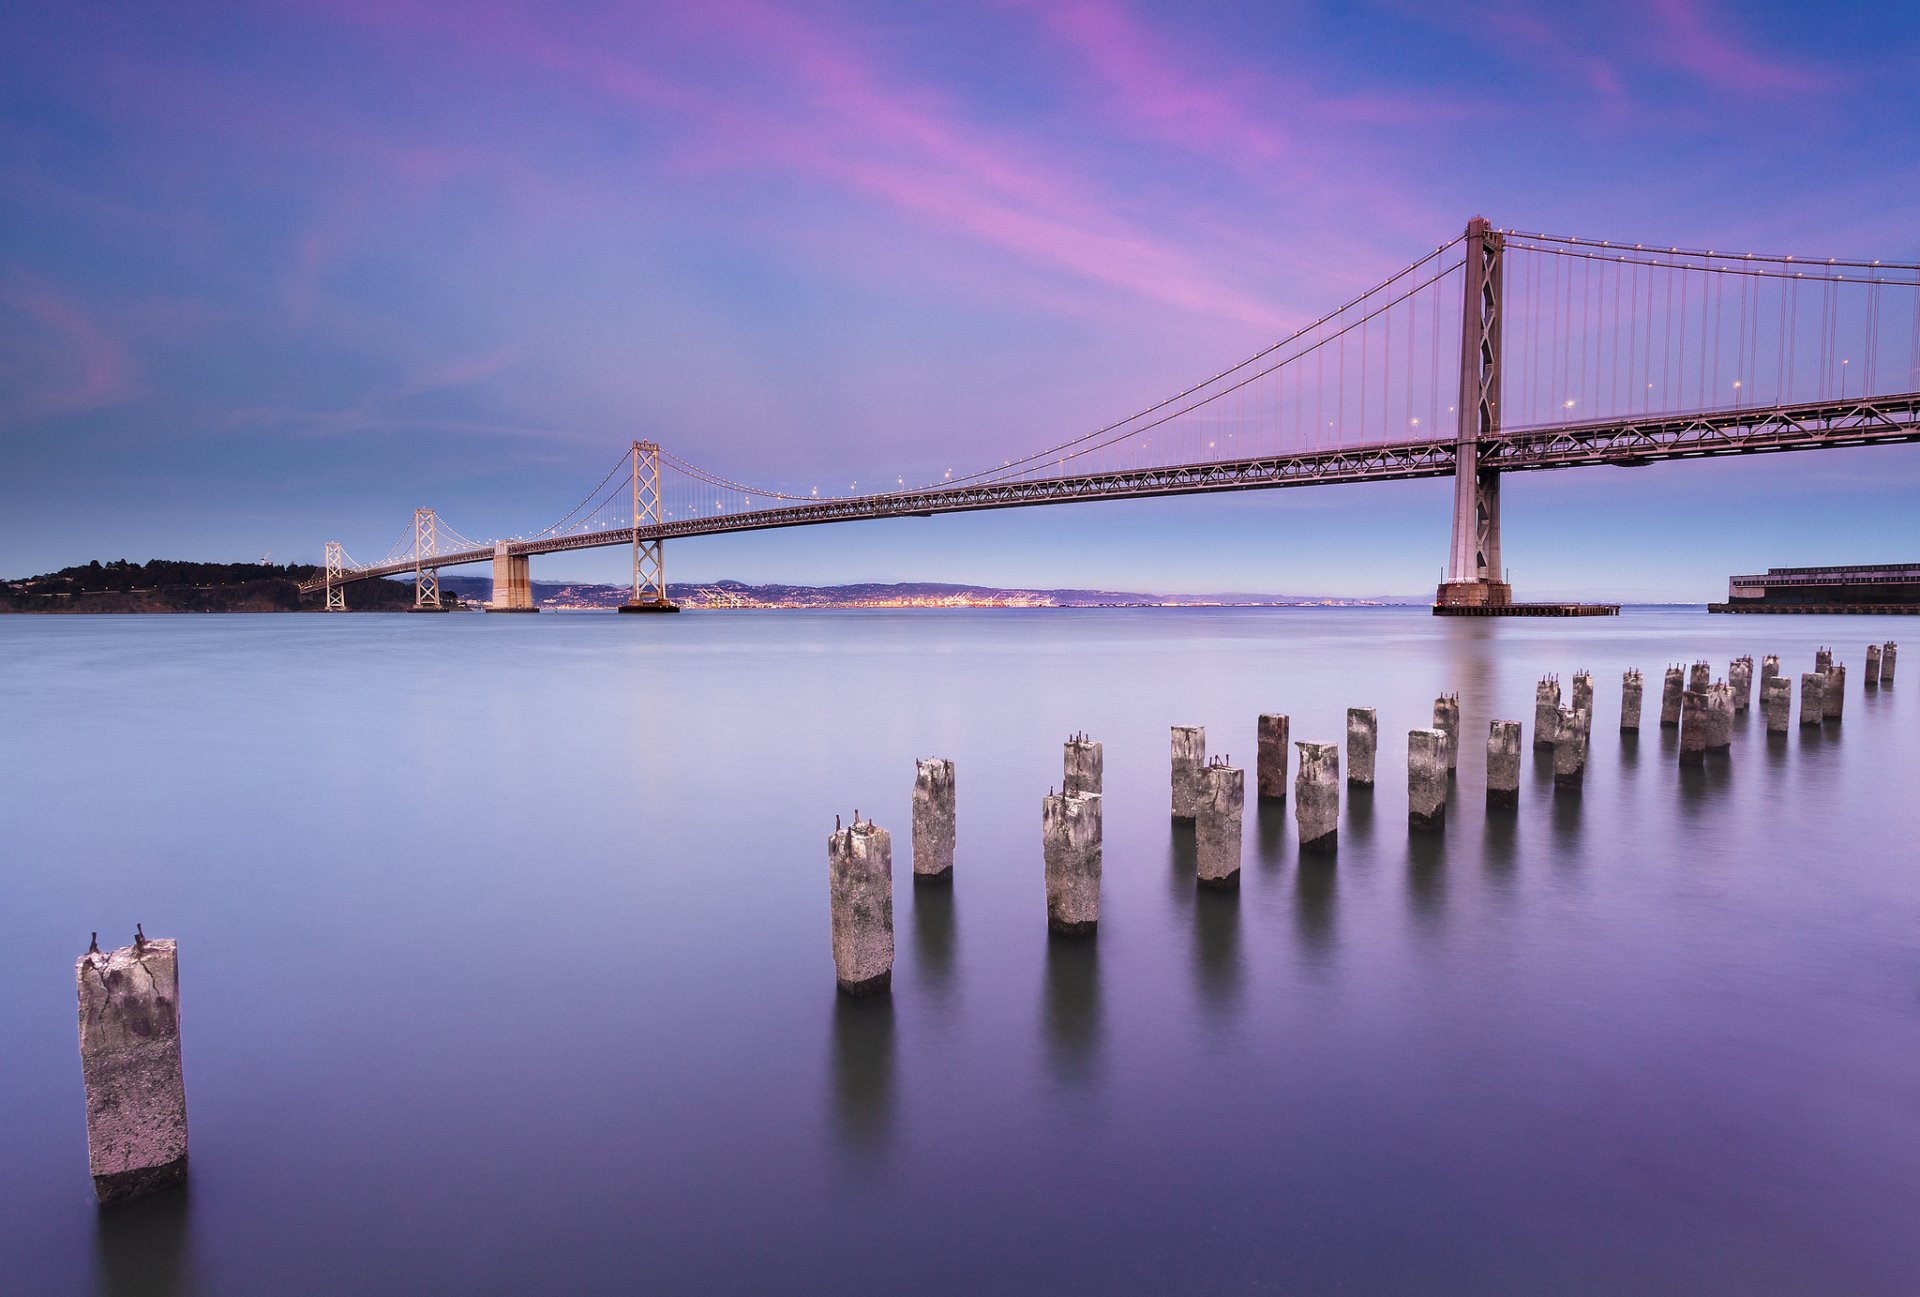 usa california san francisco city bay bridge united states town bridge lamps lighting strait beach night lilac sky clouds landscape